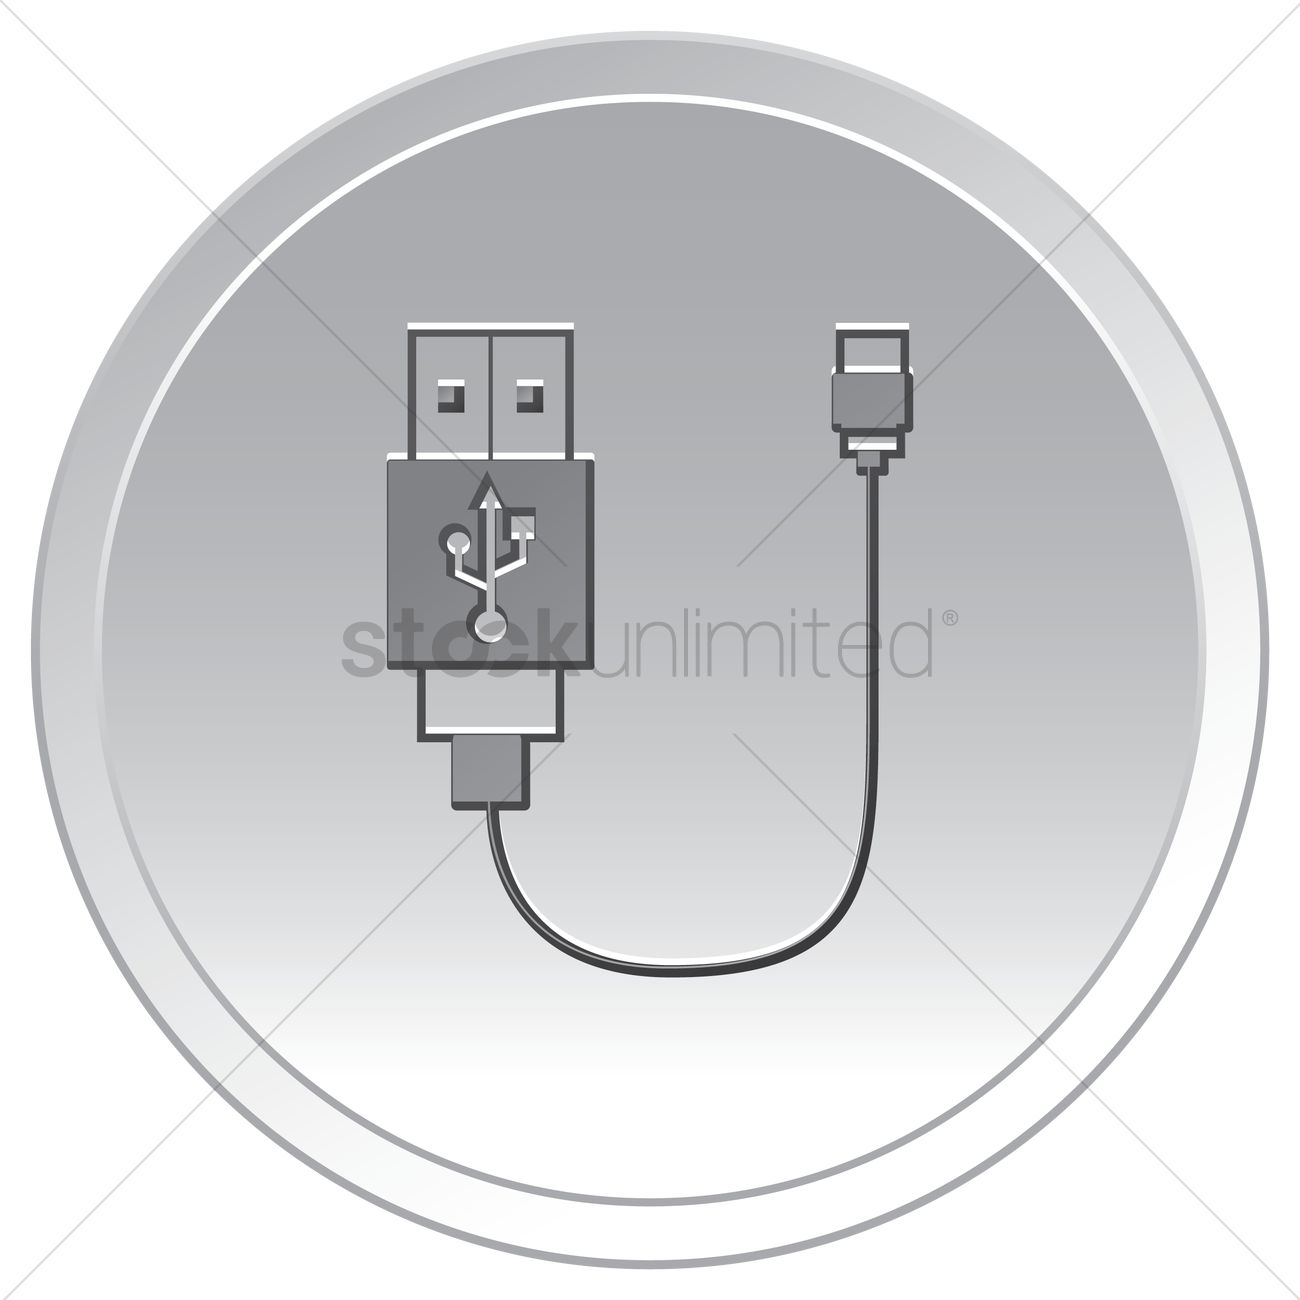 Usb cable Vector Image - 1635872 | StockUnlimited